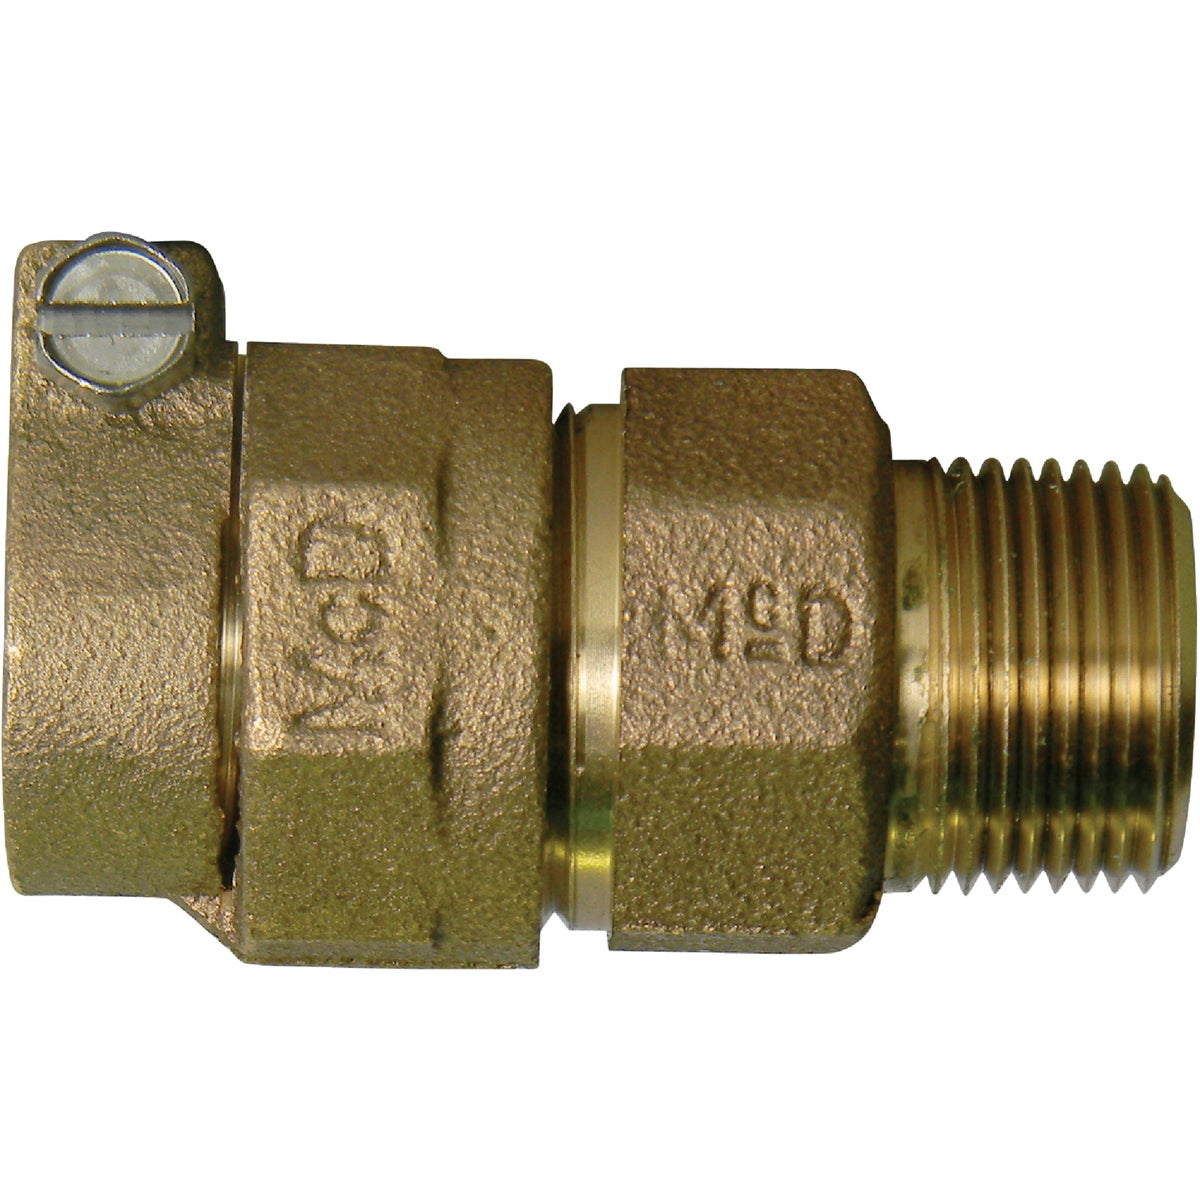 "1"" ADAPTER CTS X MIP - 74753-22 by A Y Mcdonald Mfg Co"